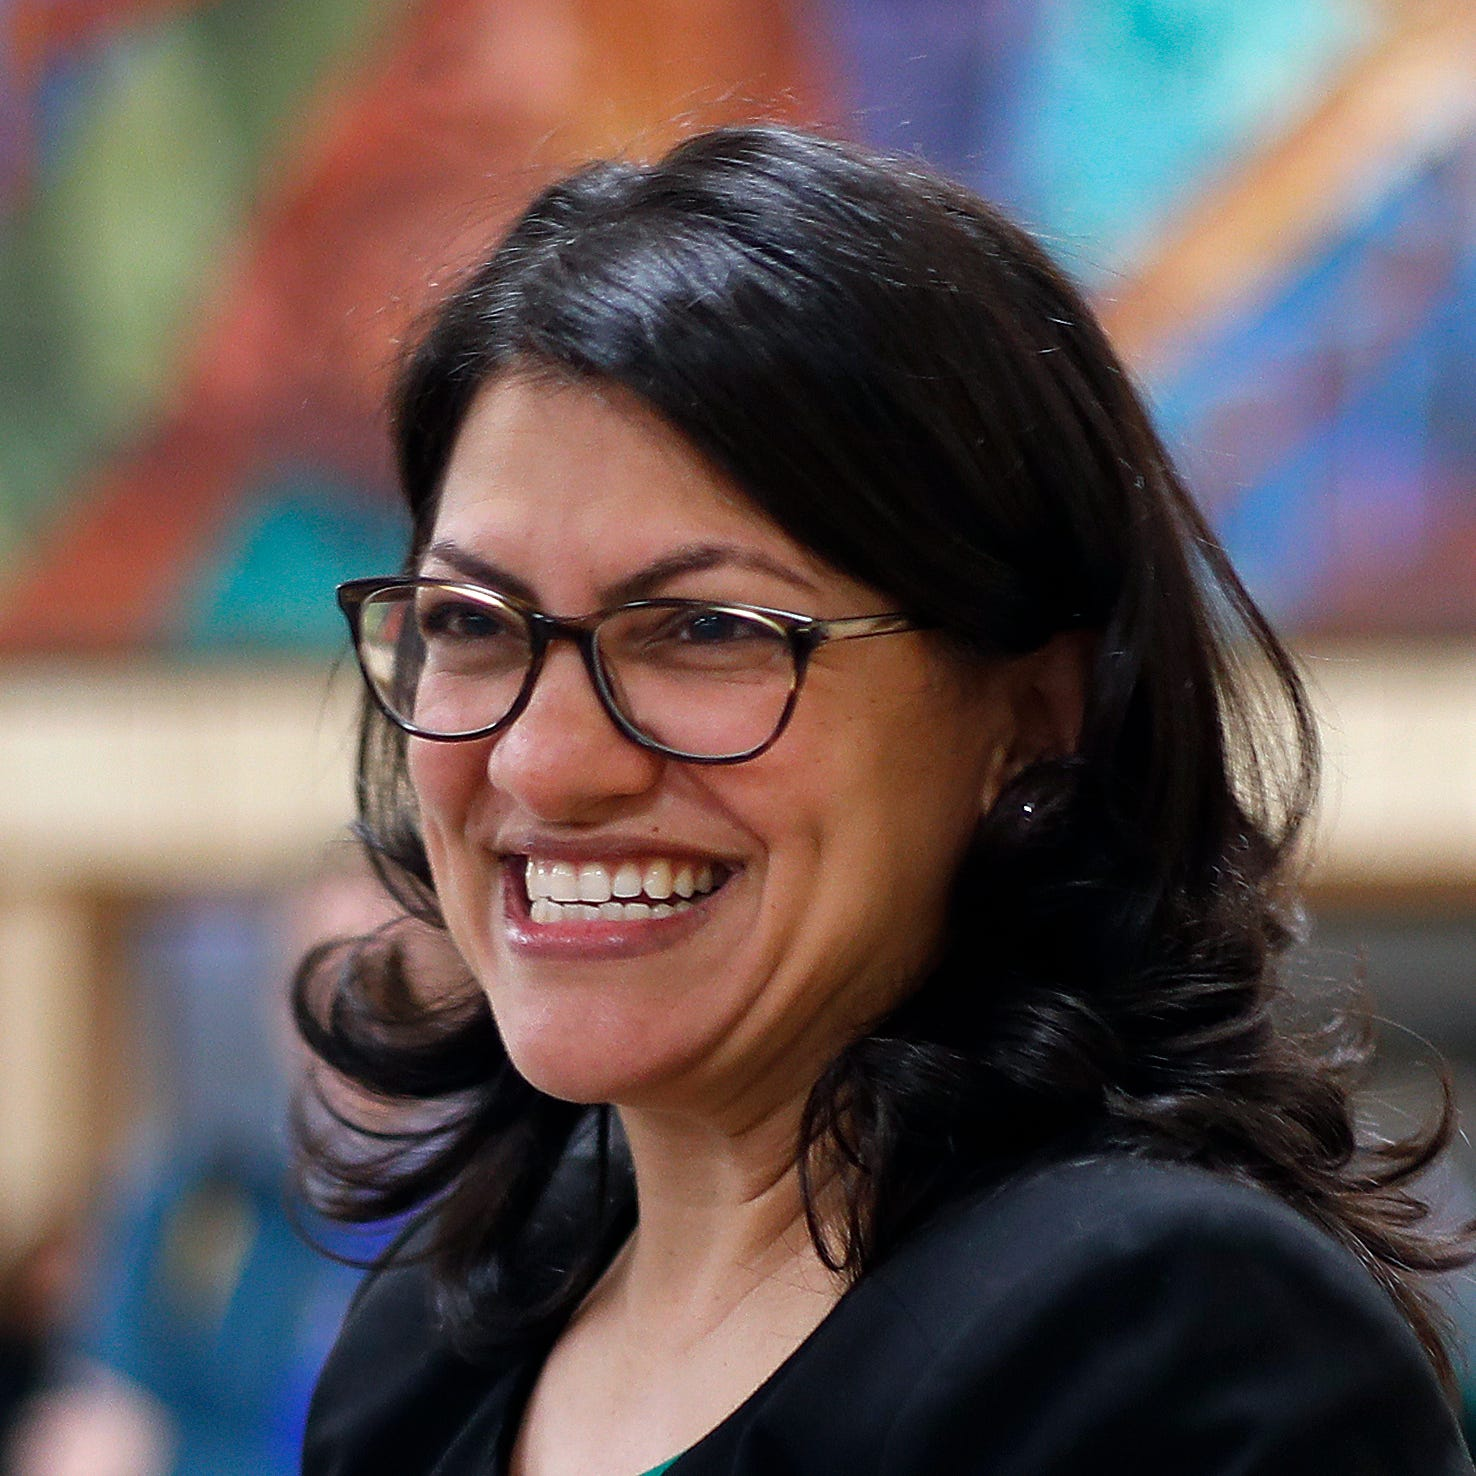 U.S. Congresswoman Rashida Tlaib in Dearborn in this 2018 file photo.